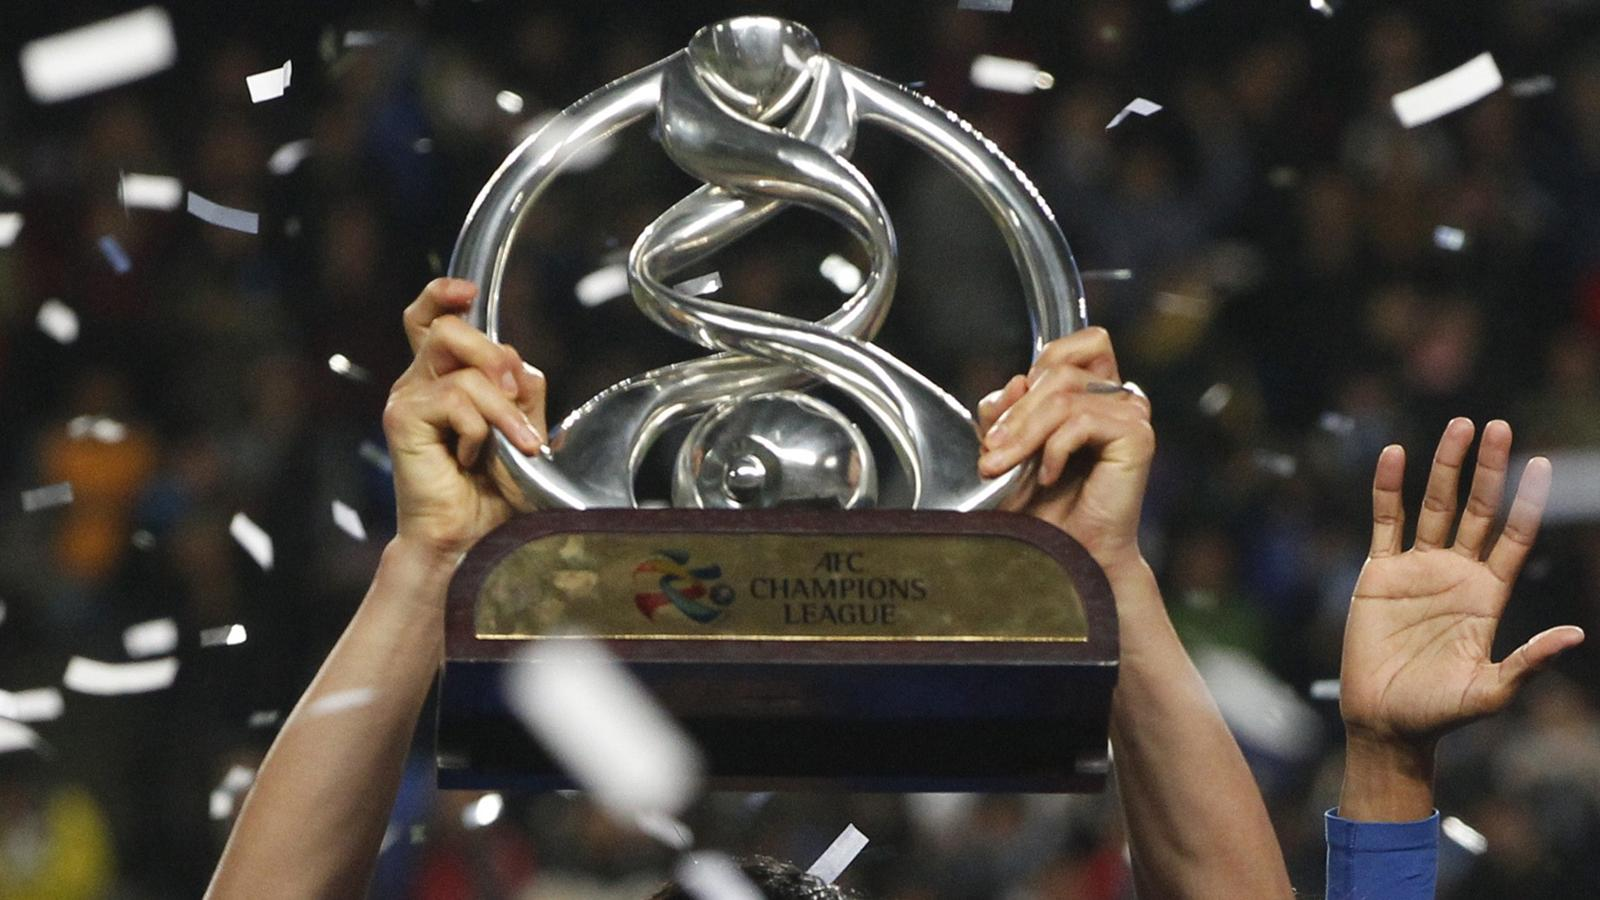 AFC-Champions-League-Trophy